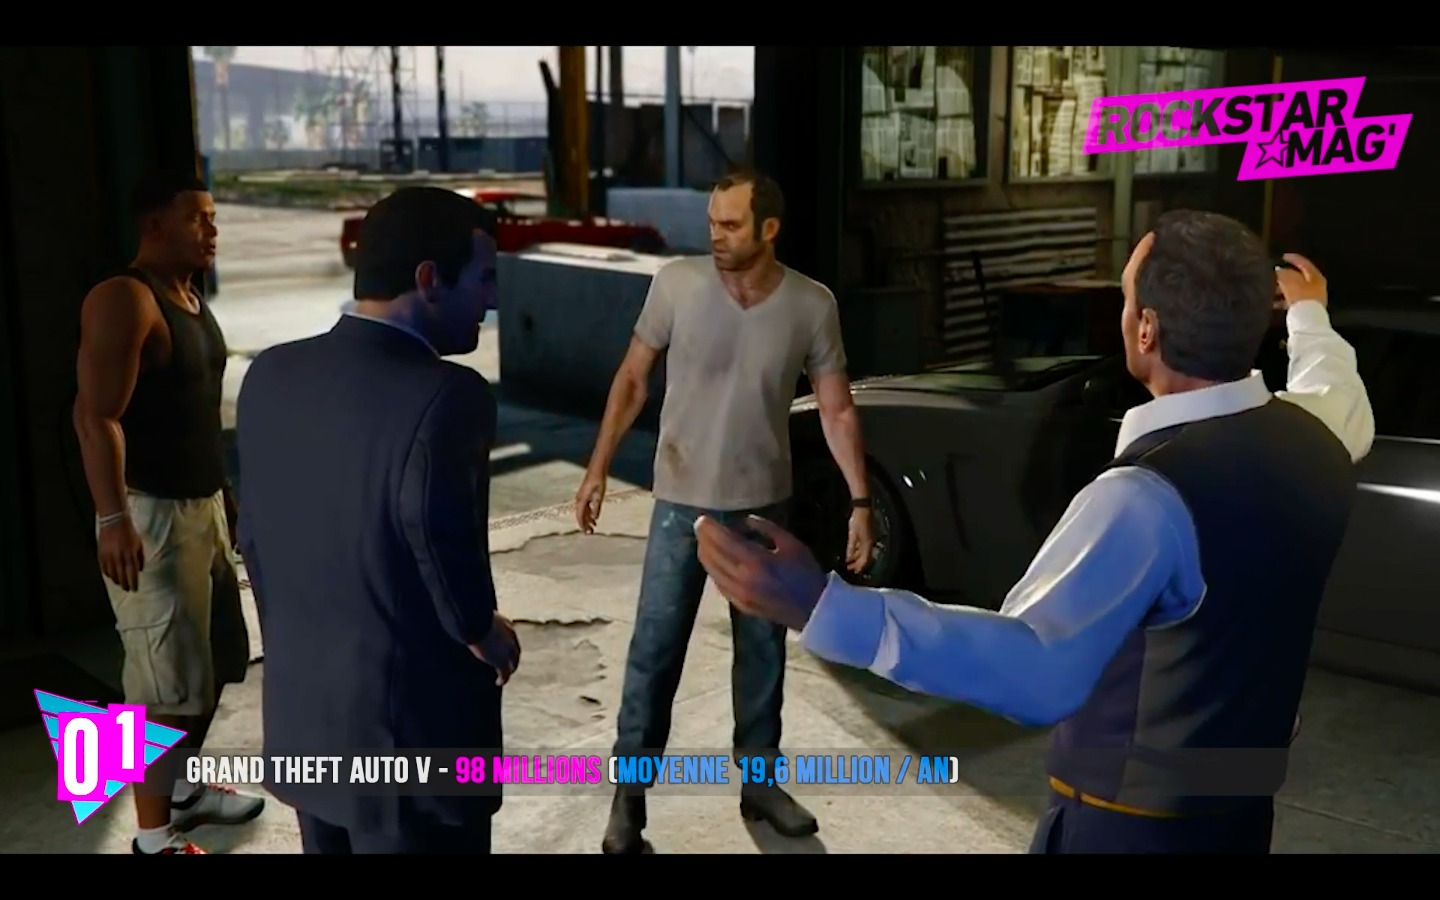 Top 1 Rockstar Games - Grand Theft Auto V avec 98 Millions